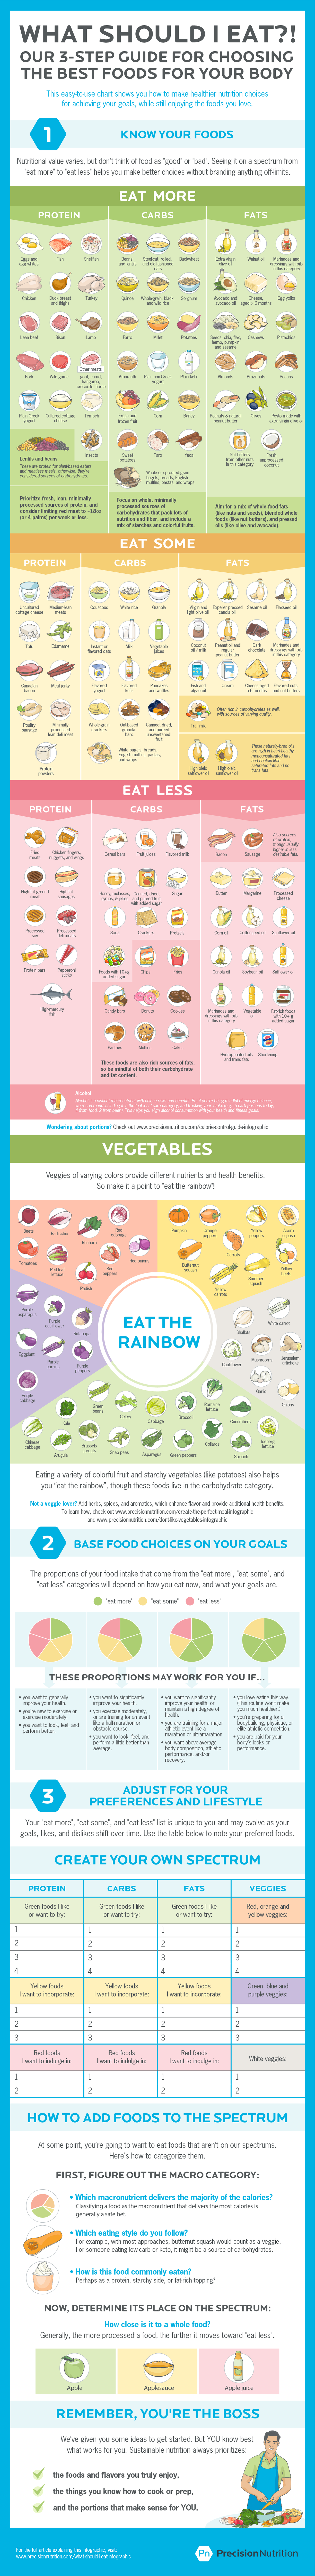 What Should I Eat?!' How to Choose the Best Foods